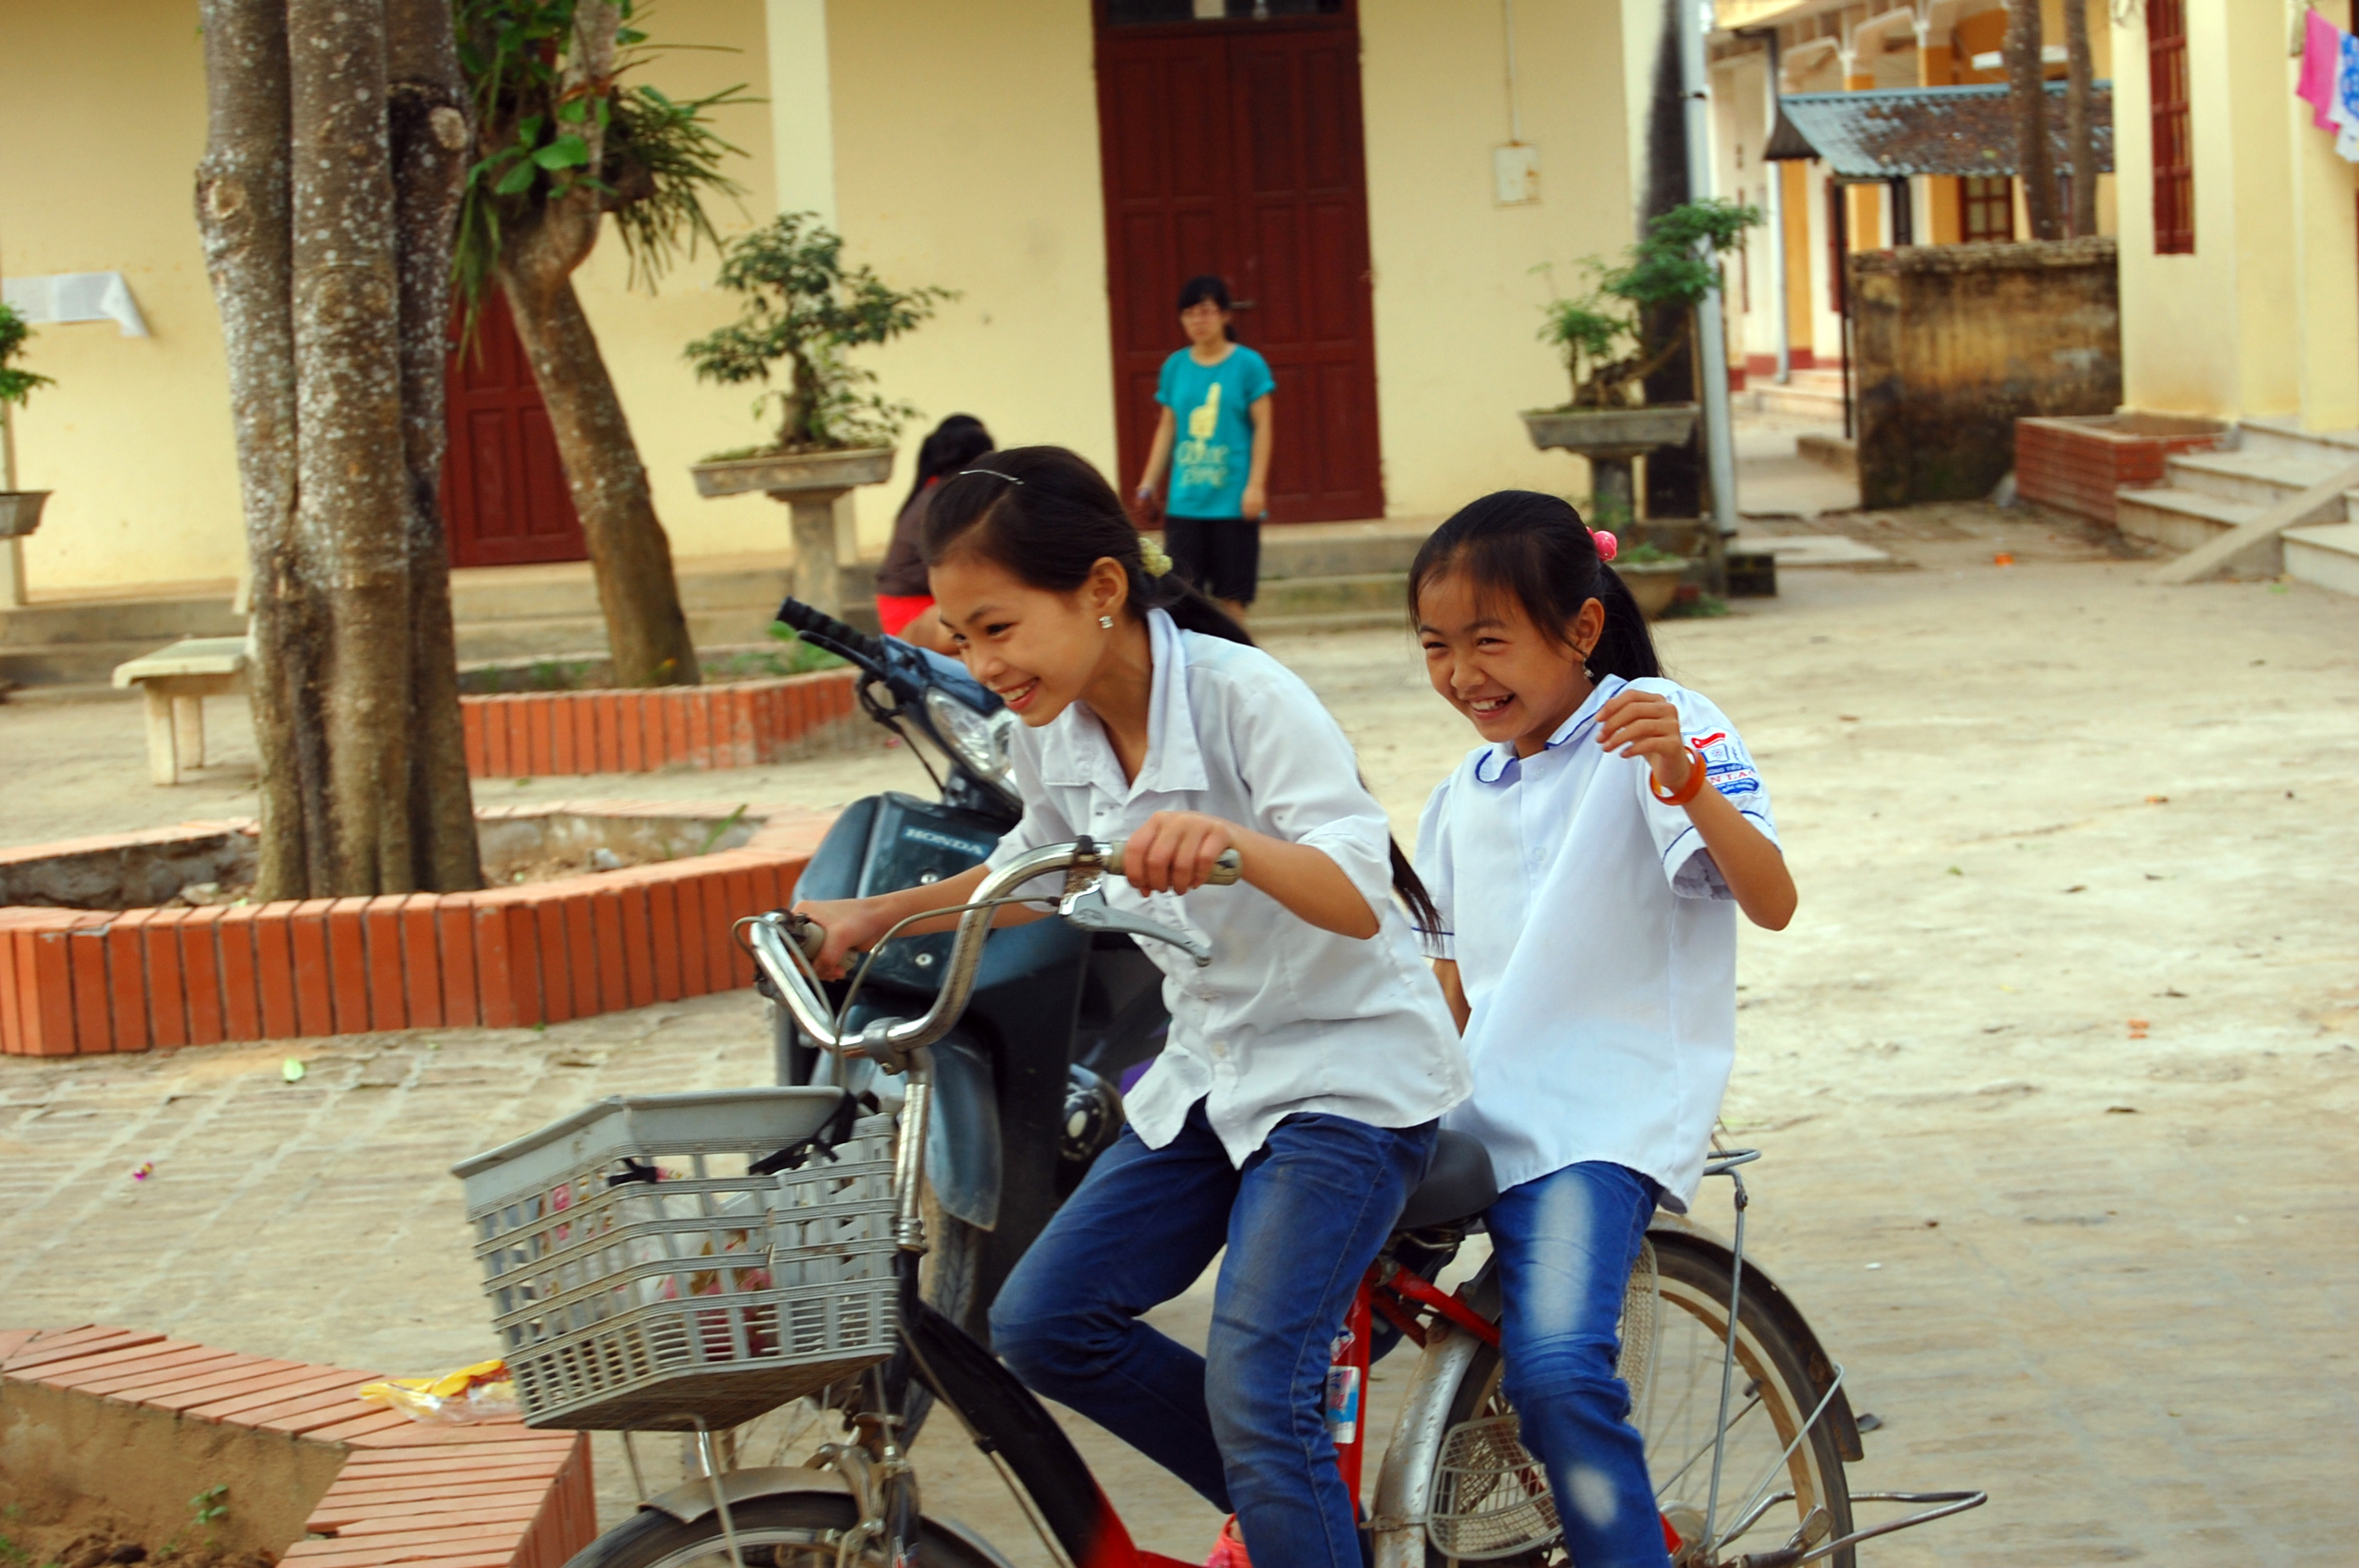 Kids enjoying a two passenger bike ride.